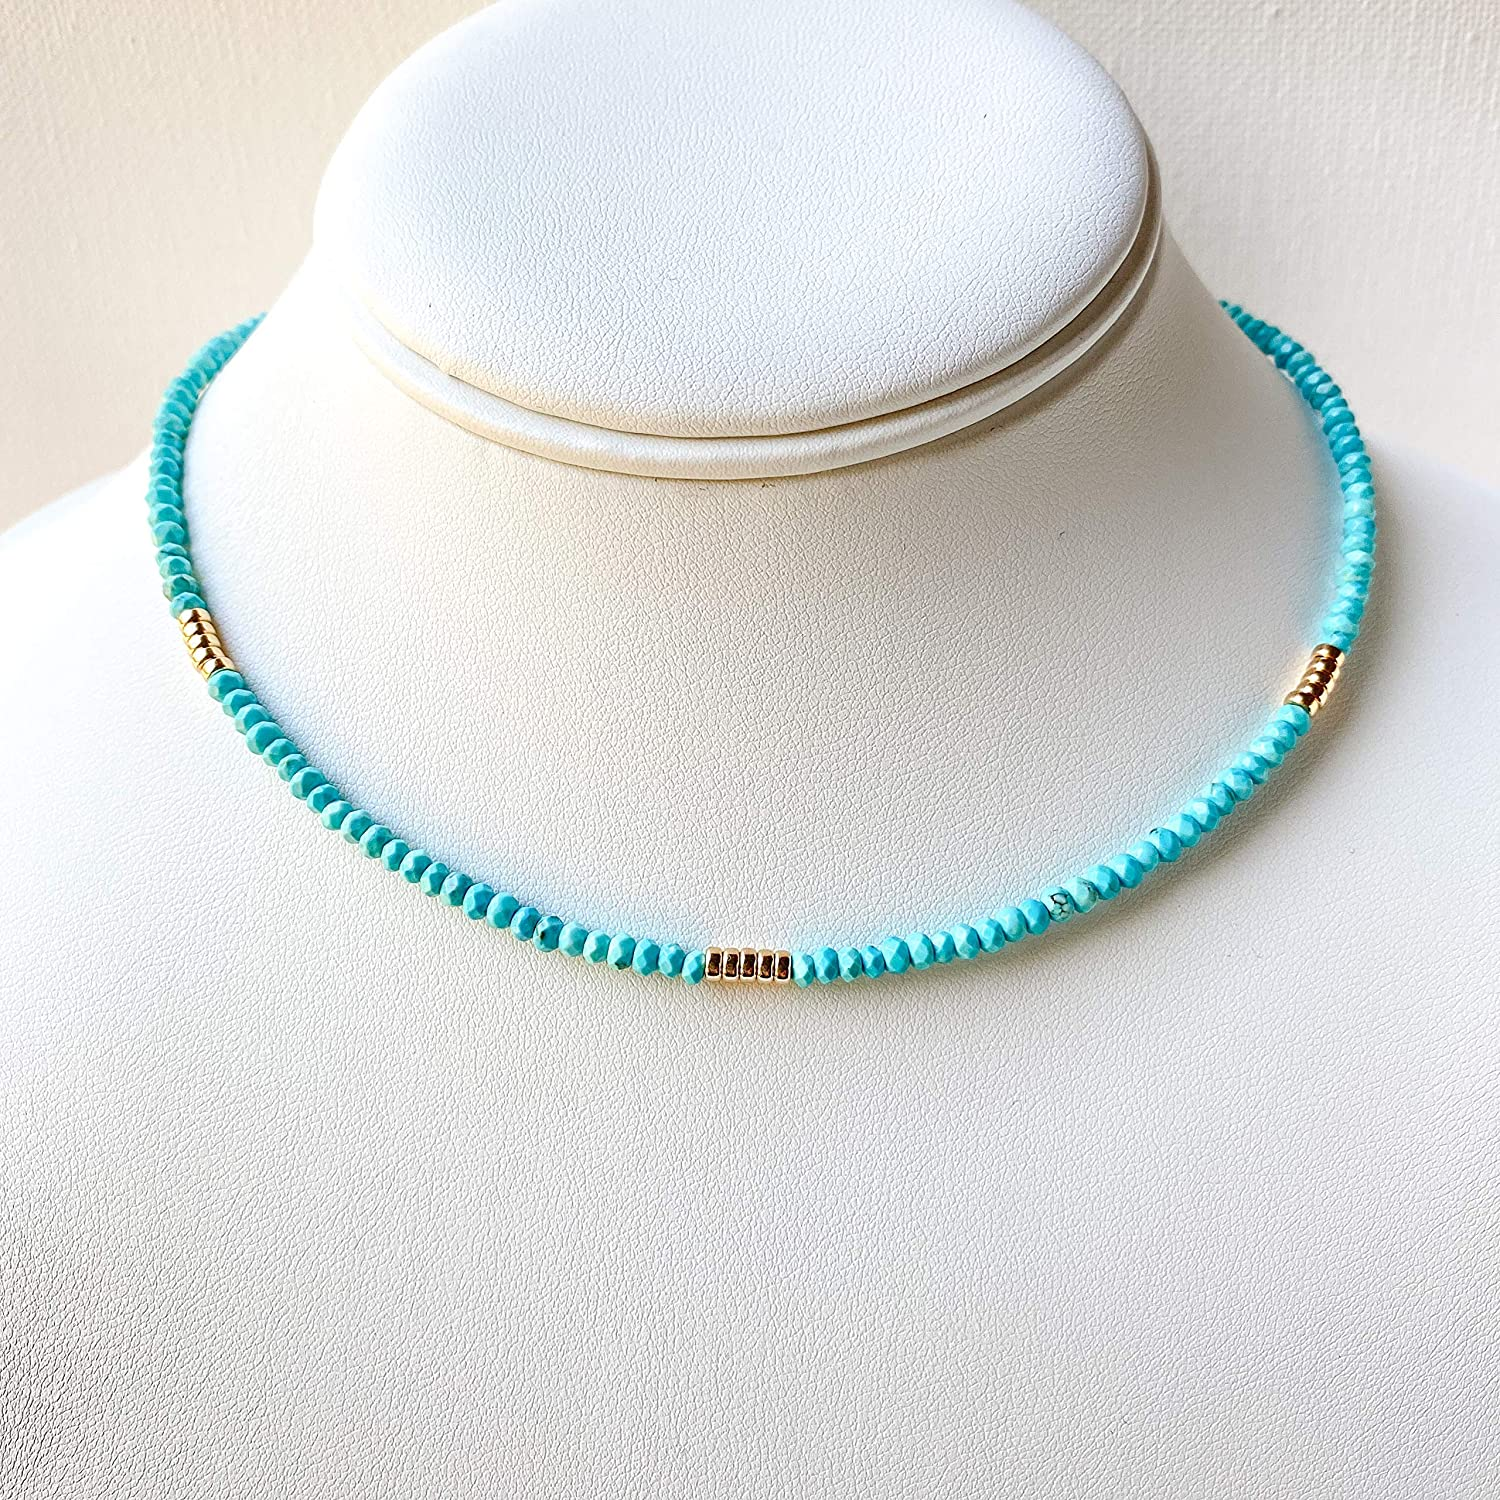 Turquoise Choker Necklace 14k Gold-Filled Elegant and Minimalist Jewelry for Women